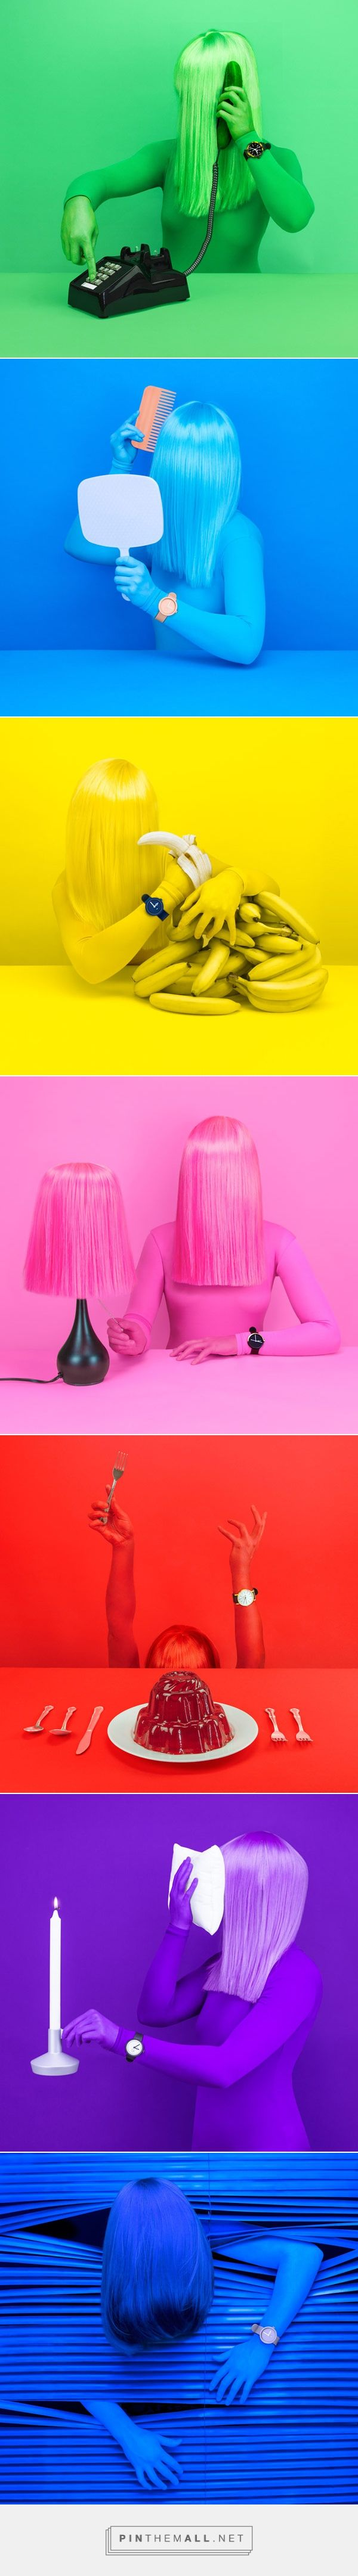 Aark Collective – Image Series by Leta Sobierajski - Pinned by Giorgettidesign.it